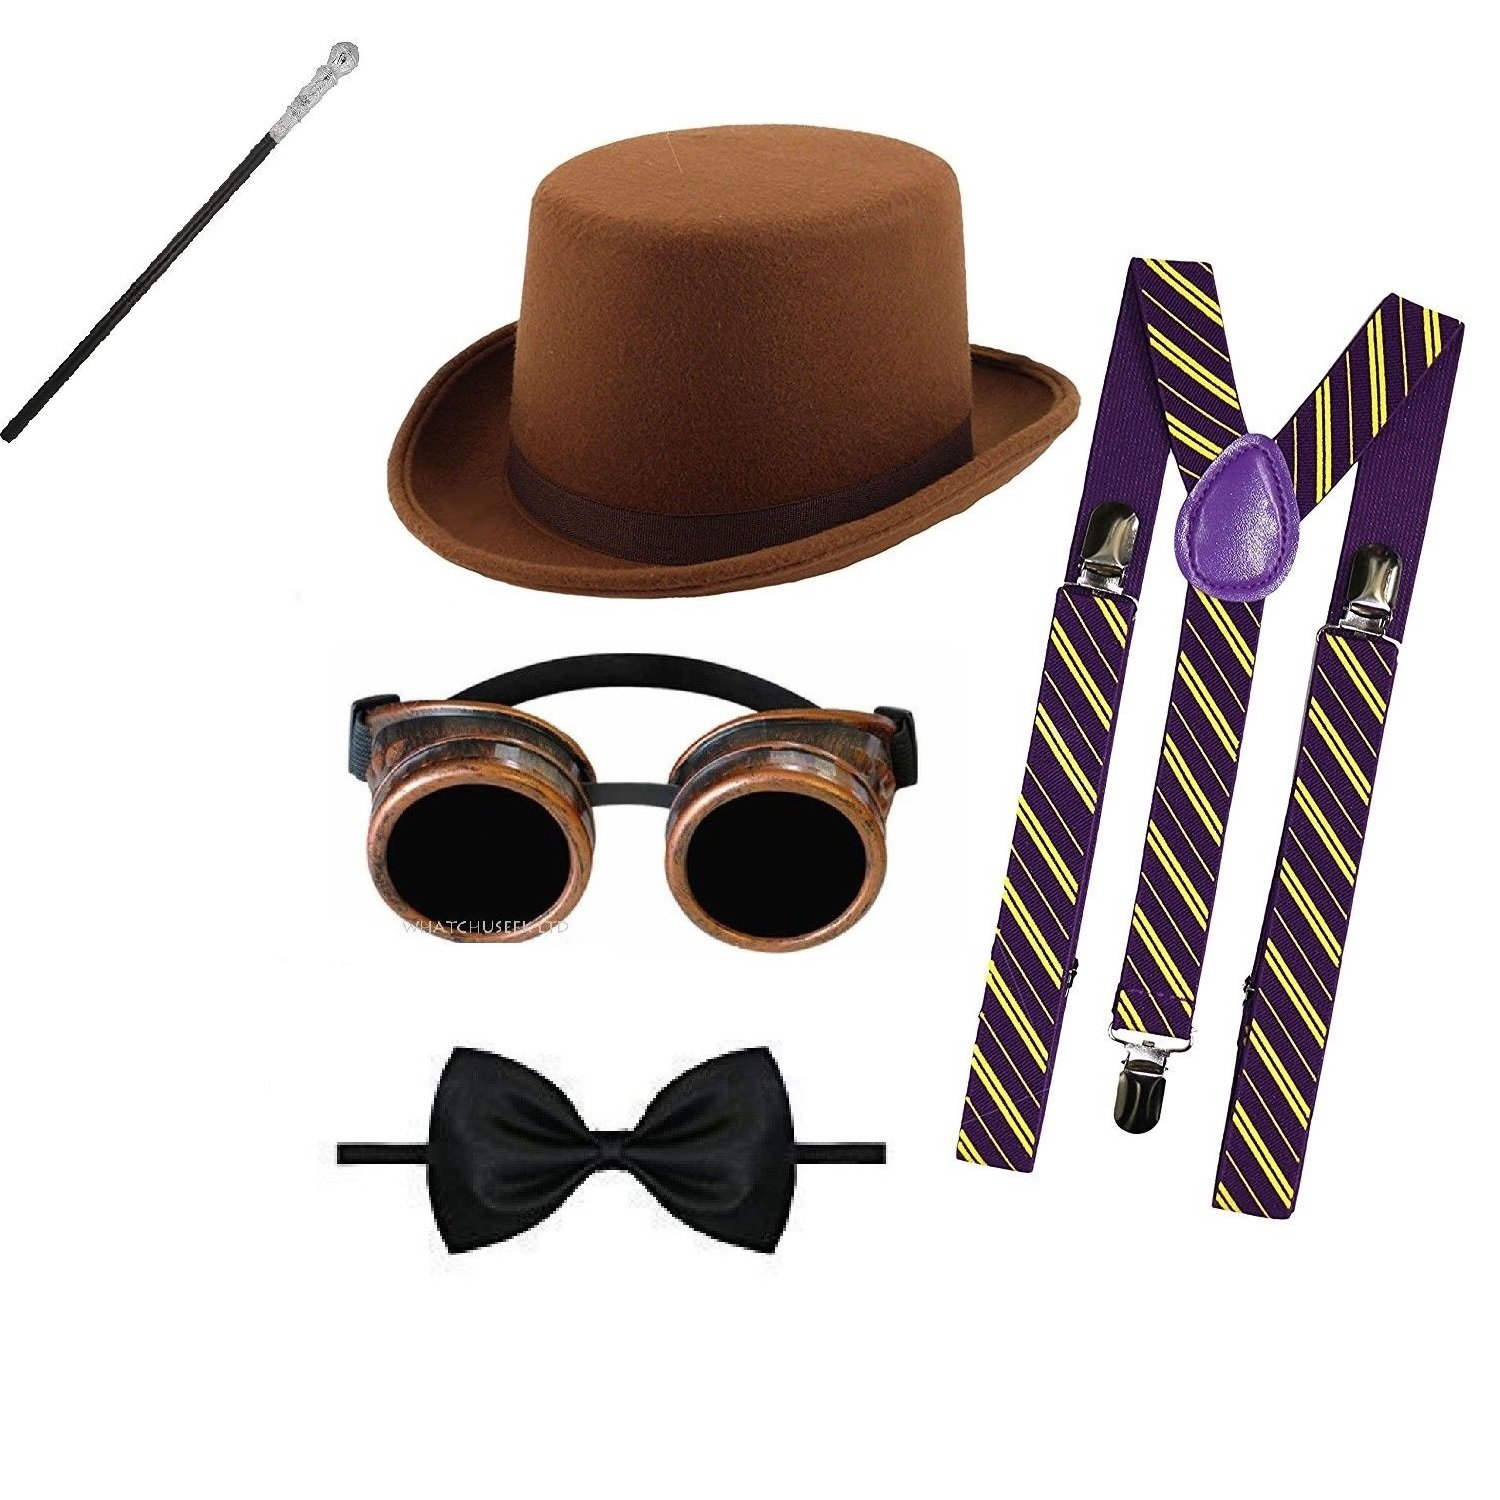 059f879e9c4 Mega Jumble® Adult Willy Wonka Charlie and the Chocolate Factory Roald Dahl  Adult Unisex Fancy Dress Accessories Set Brown Top Hat